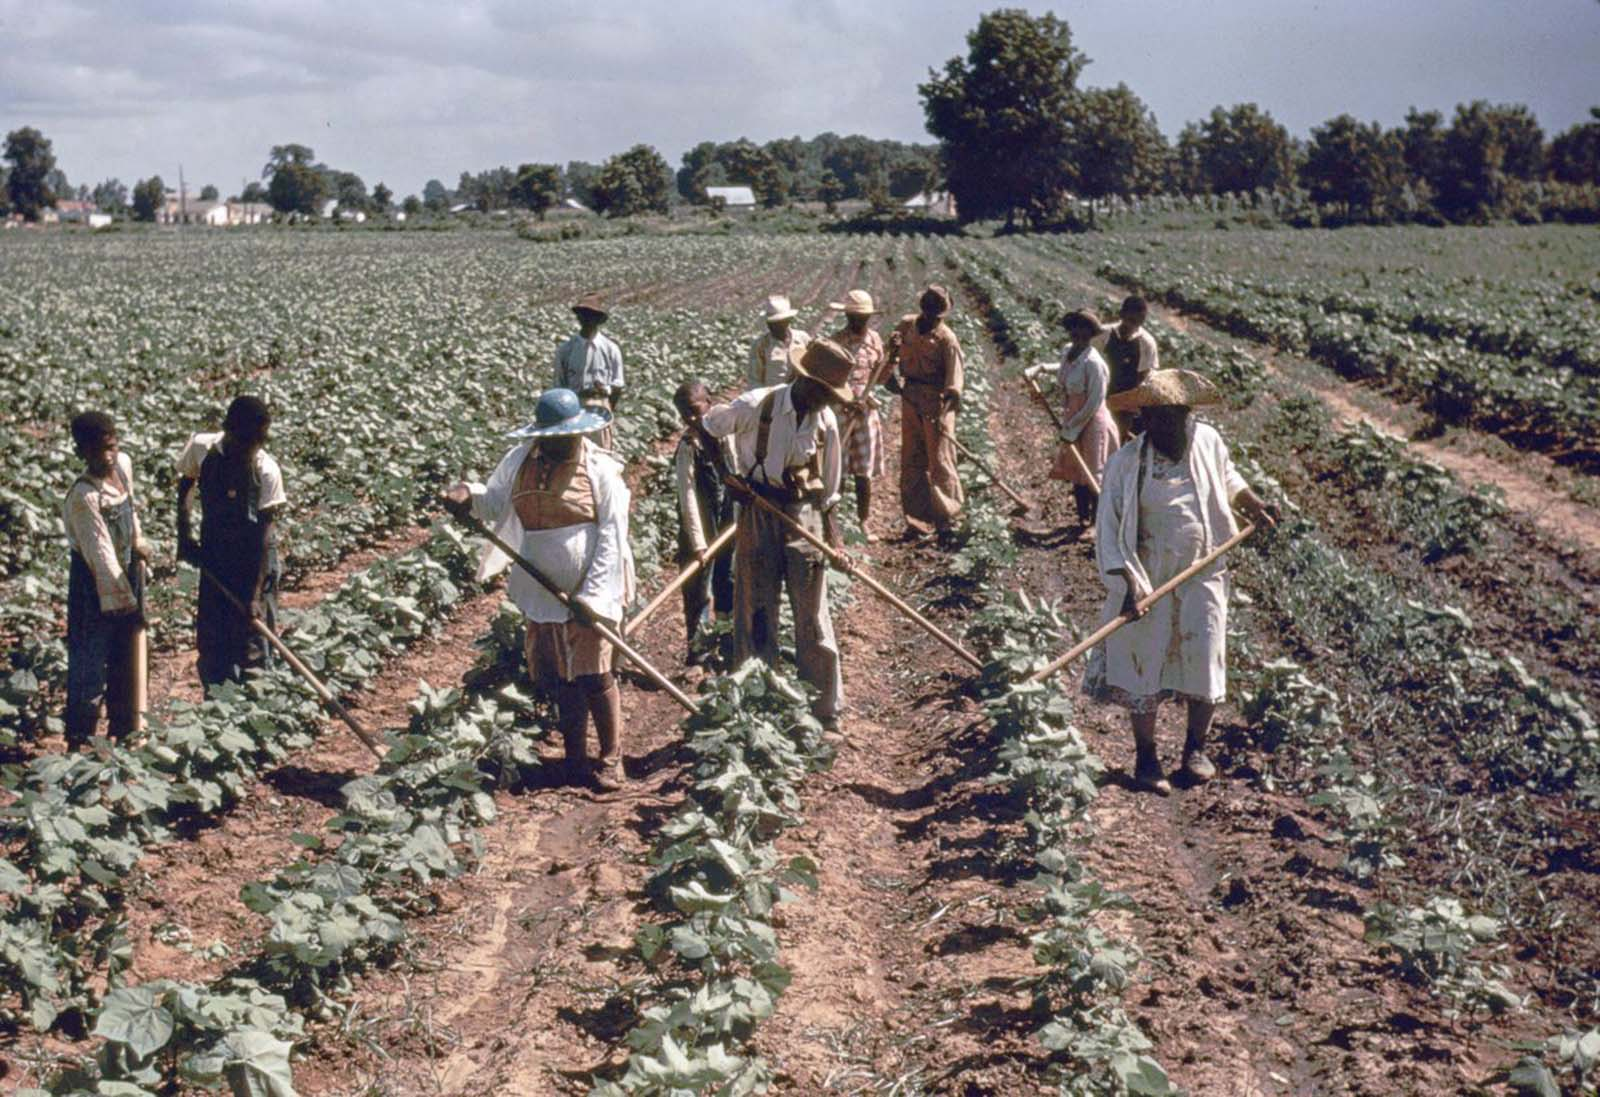 Workers tend crops at Bayou Bourbeau plantation, a Farm Security Administration cooperative in Louisiana. 1940.